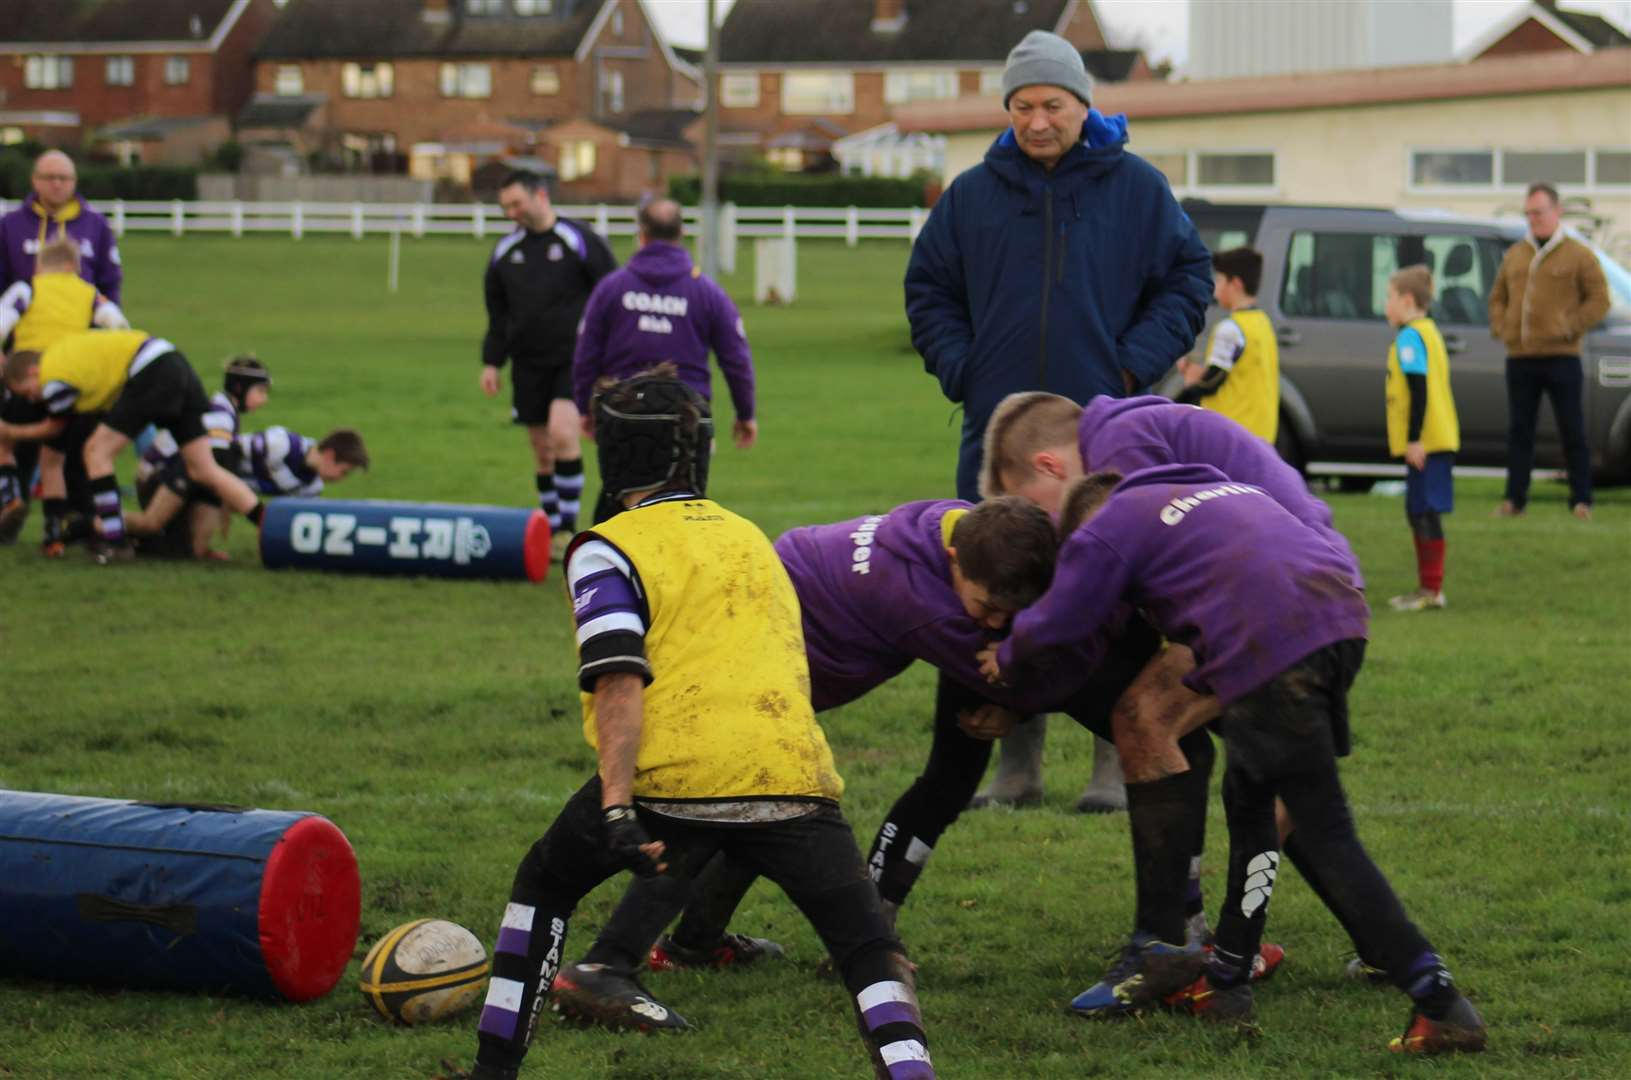 England's head coach Eddie Jones coaching the Under 11s' scrum. Photo: Darren Dolby